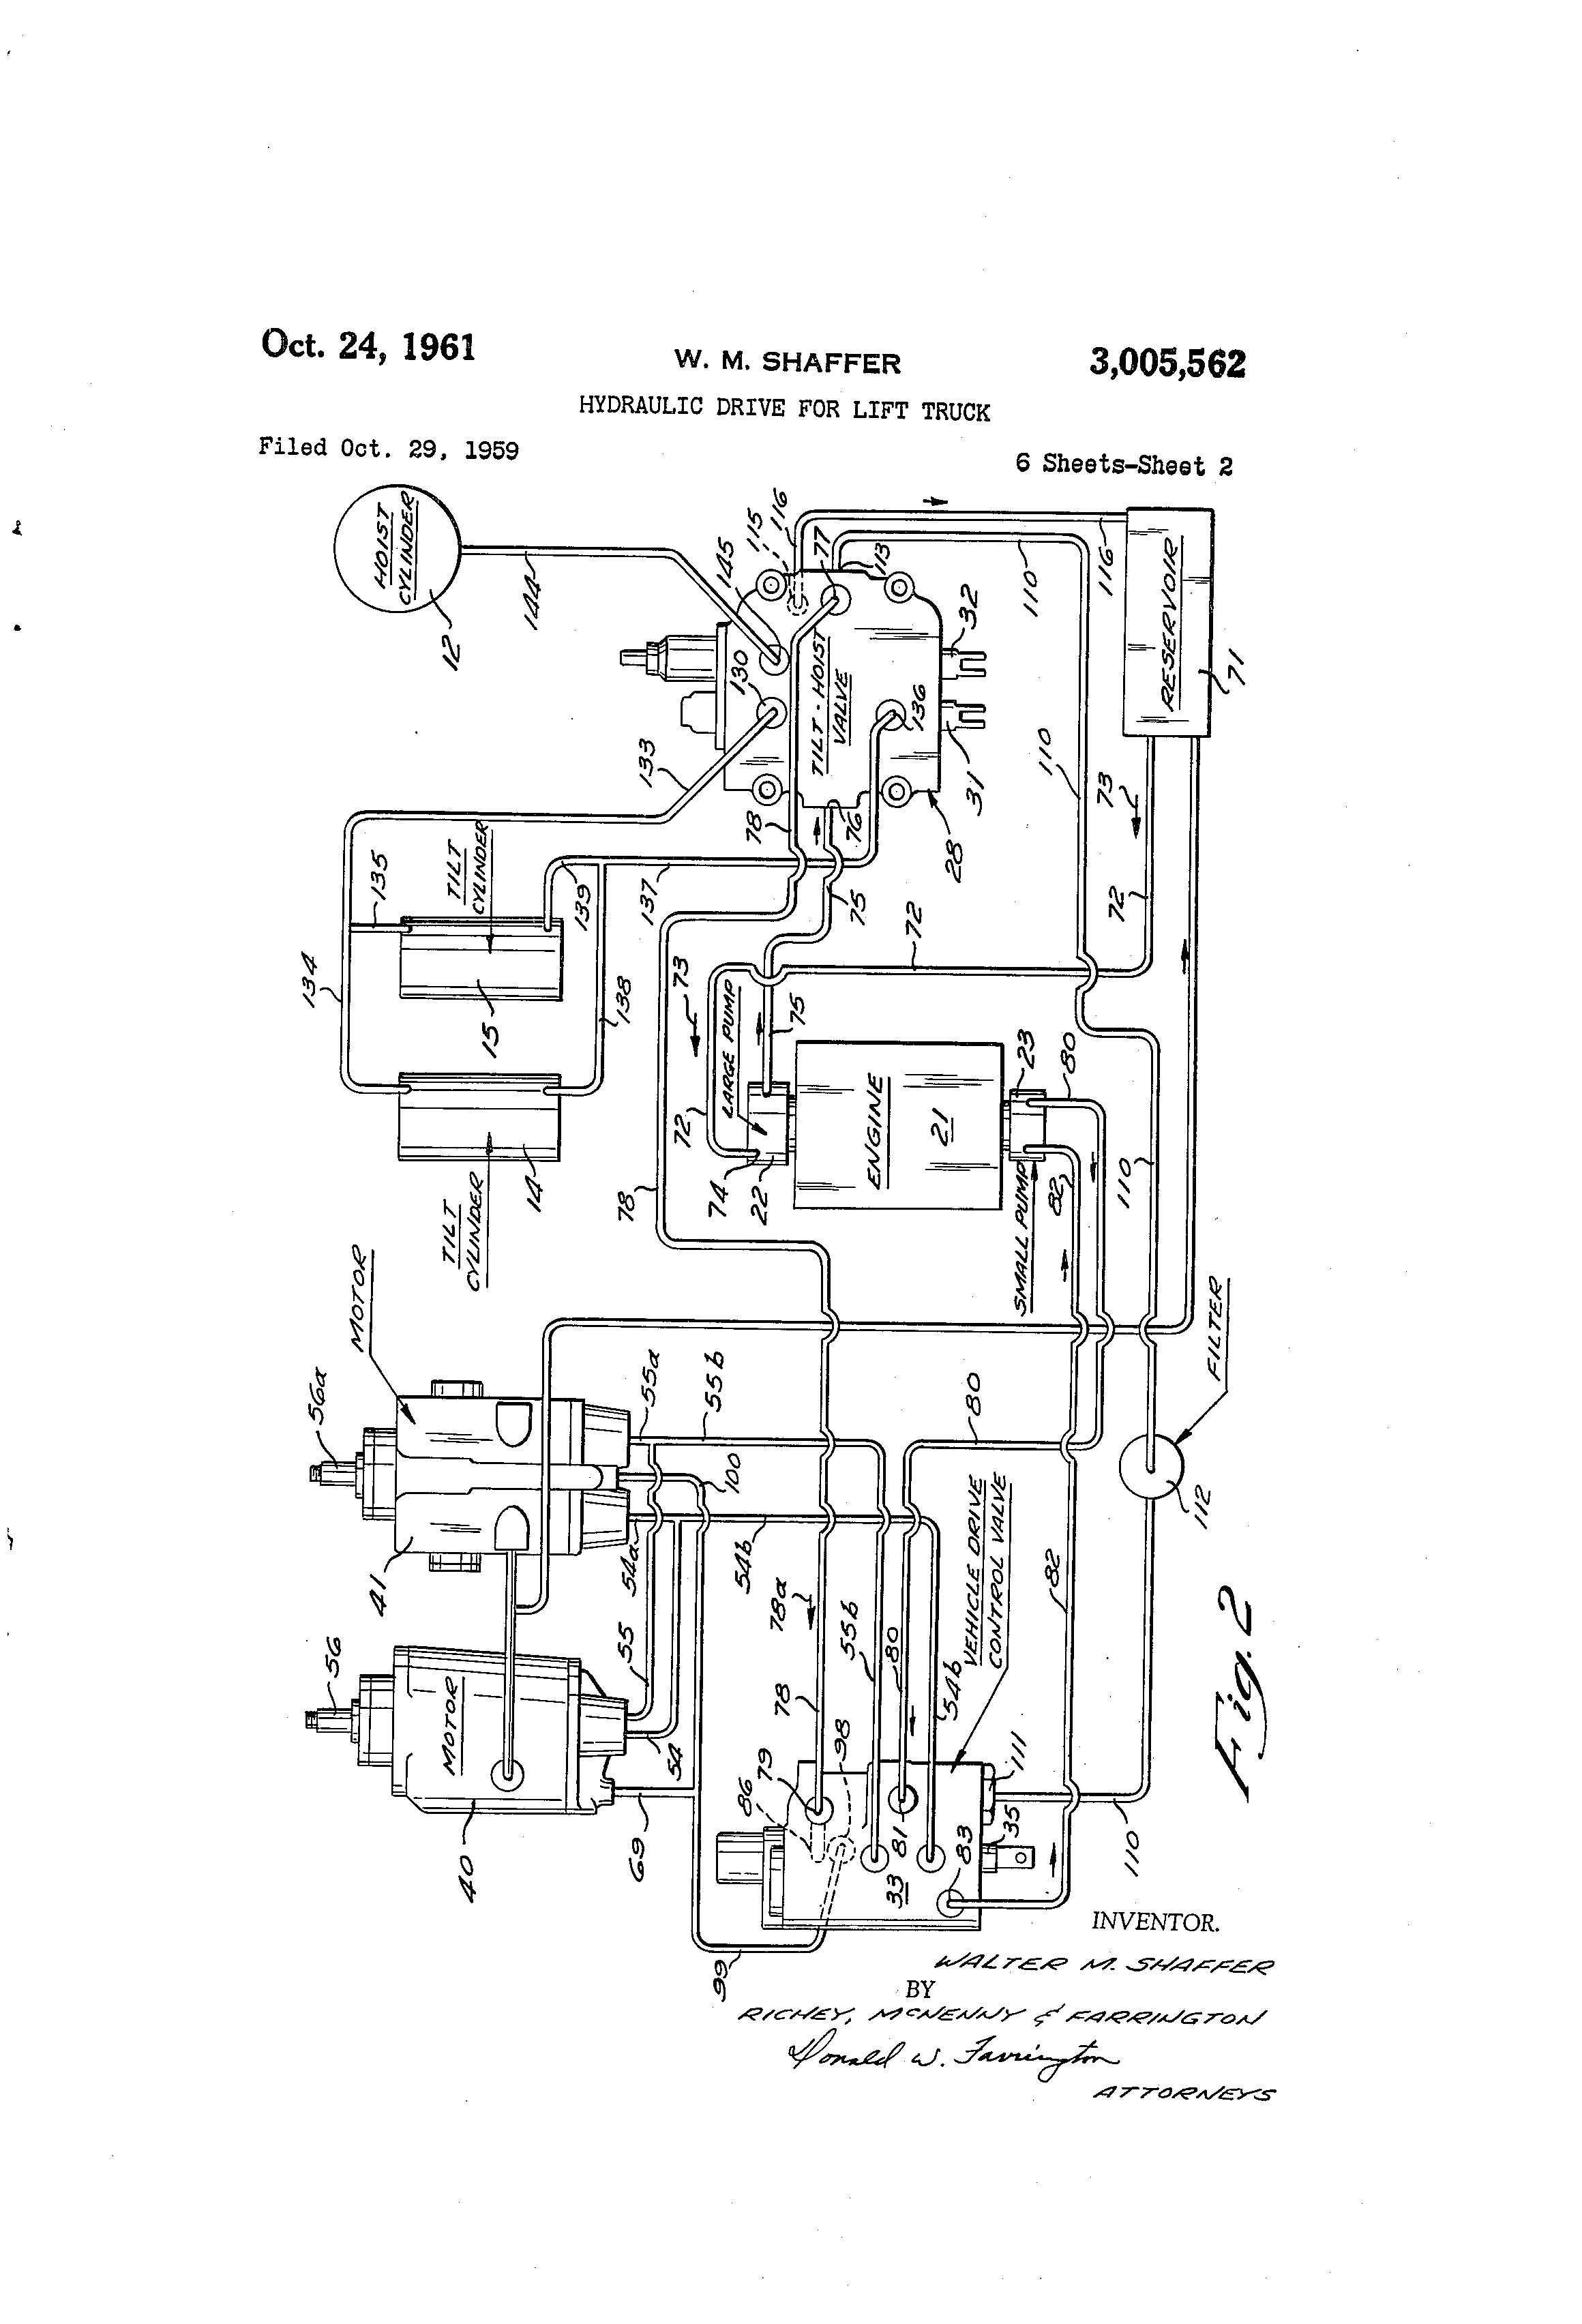 caterpillar forklift wiring diagram caterpillar forklift Clark Forklift Hydraulic Diagram Clark Forklift Hydraulic Diagram